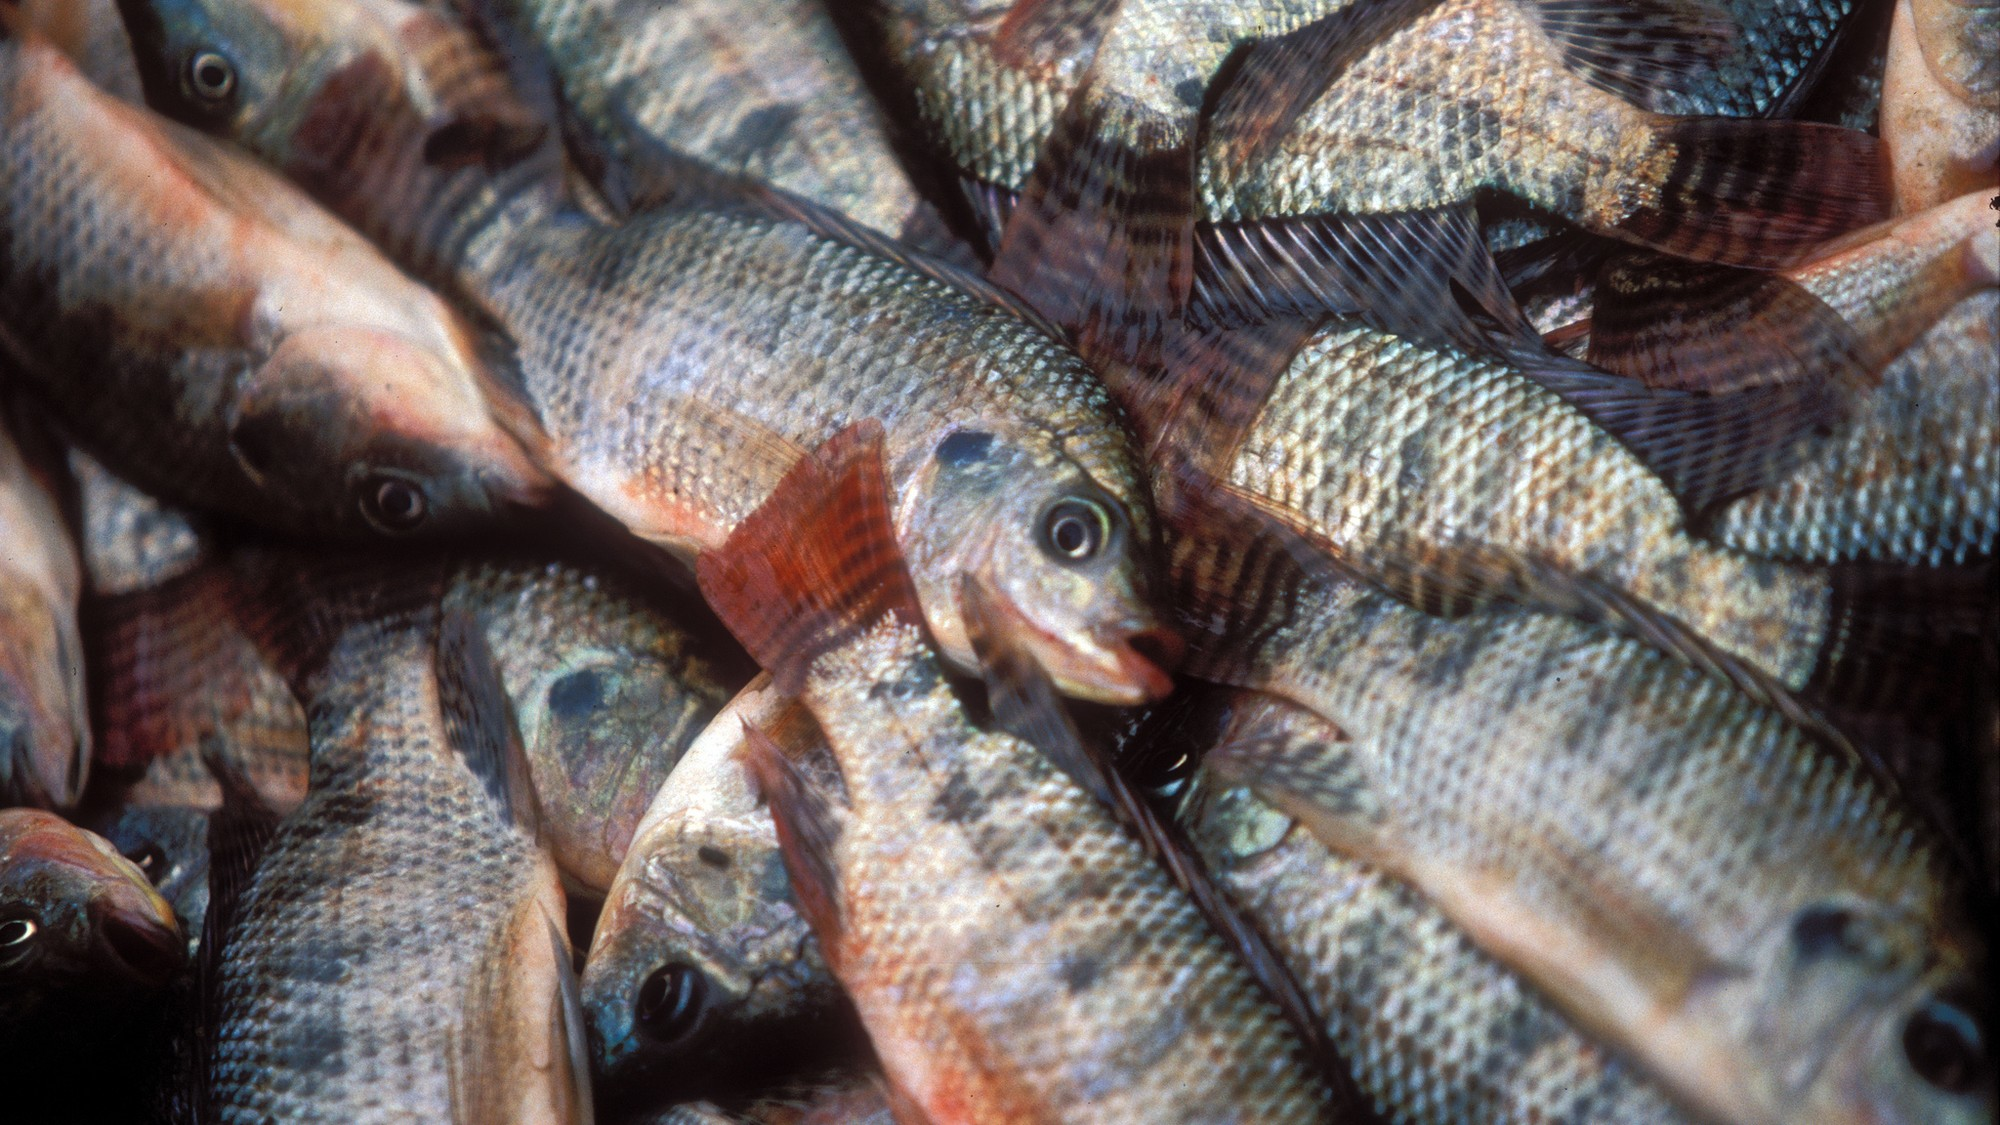 An image of Tilapia fishes